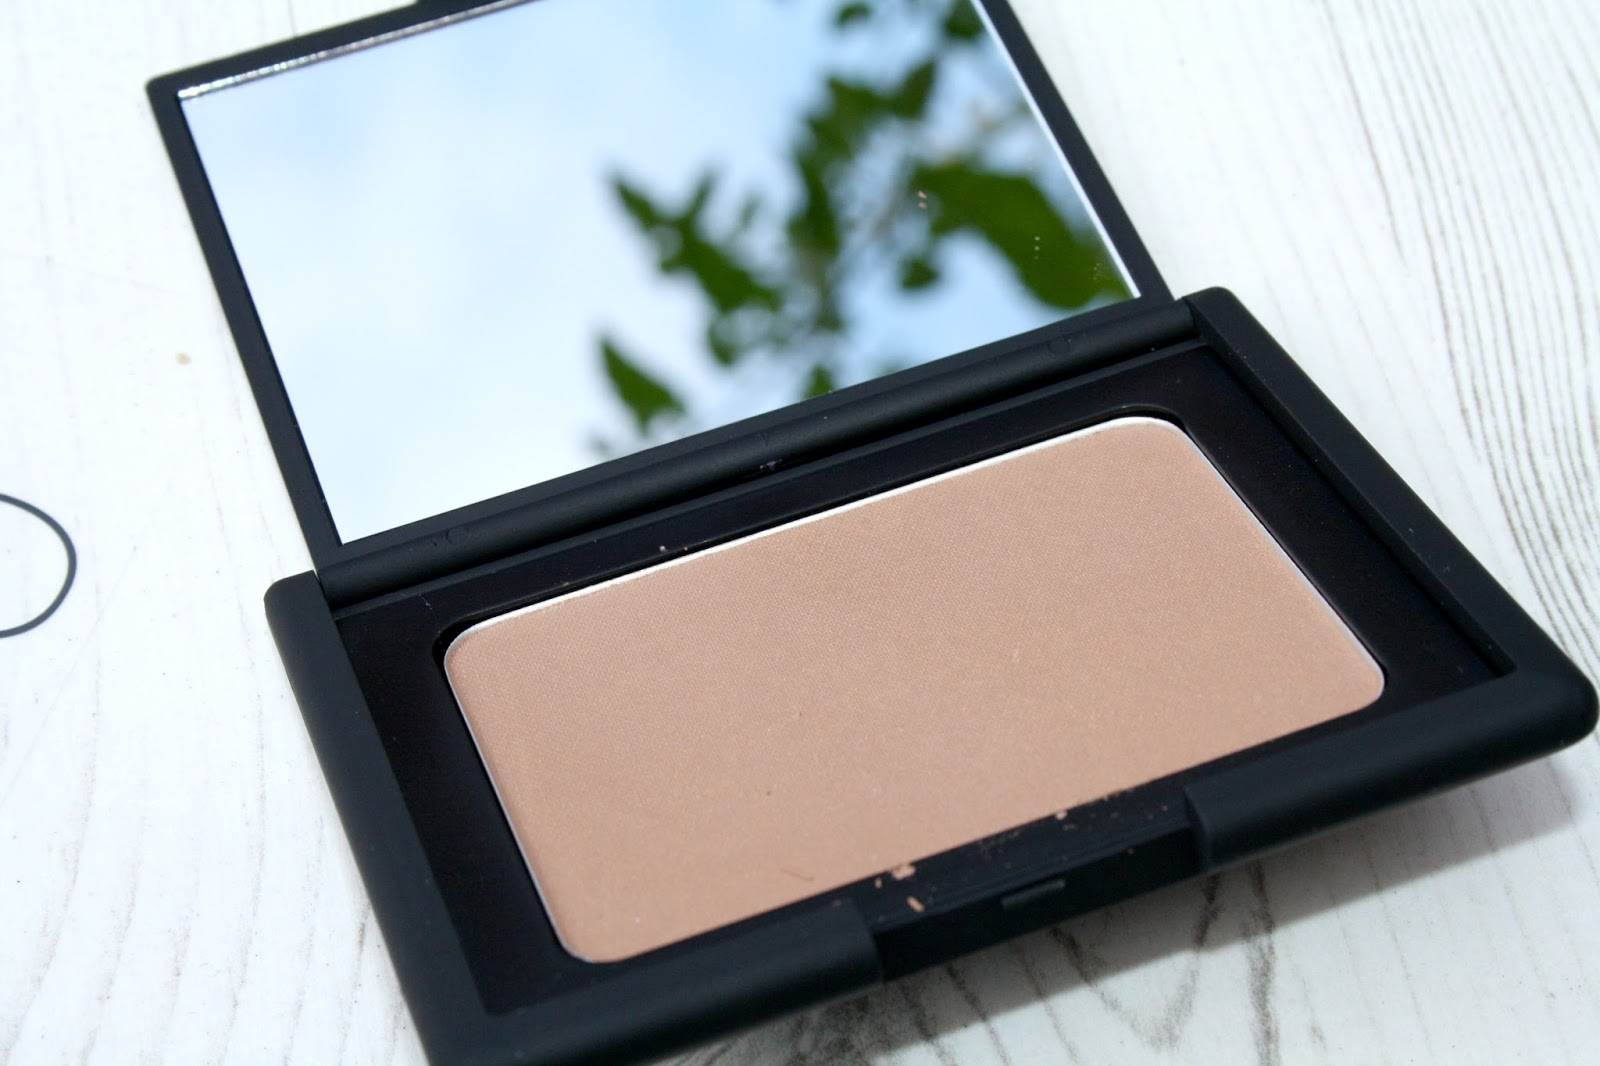 beautyqueenuk: ASOS EXCLUSIVE - NARS LAGUNA BRONZER & HIGHLIGHTING KIT.